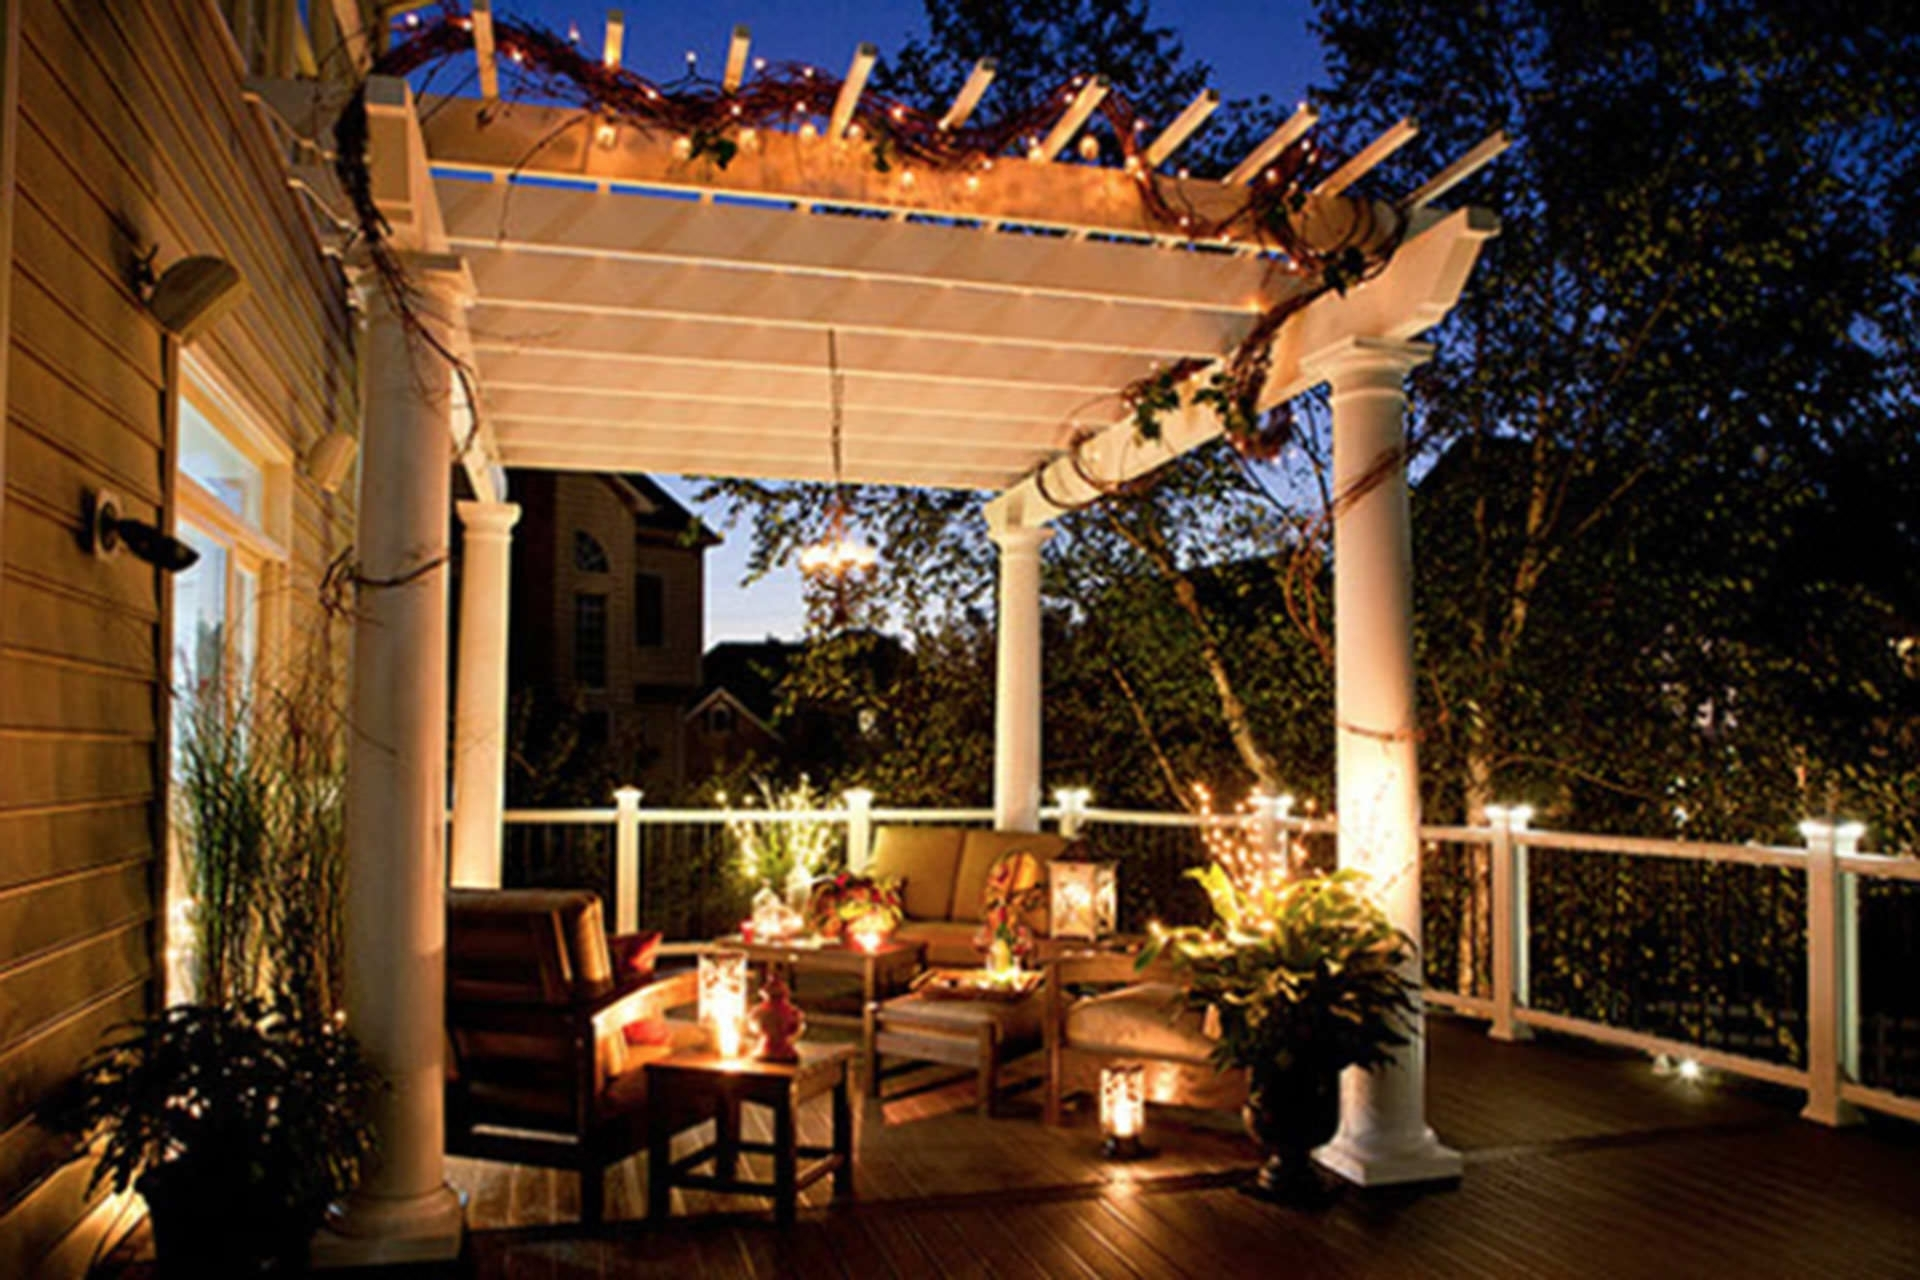 Current Outdoor Hanging Lights For Pergola With Diy : Outdoor Patio String Lights Globe Enjoy The Lanterns For (View 15 of 20)